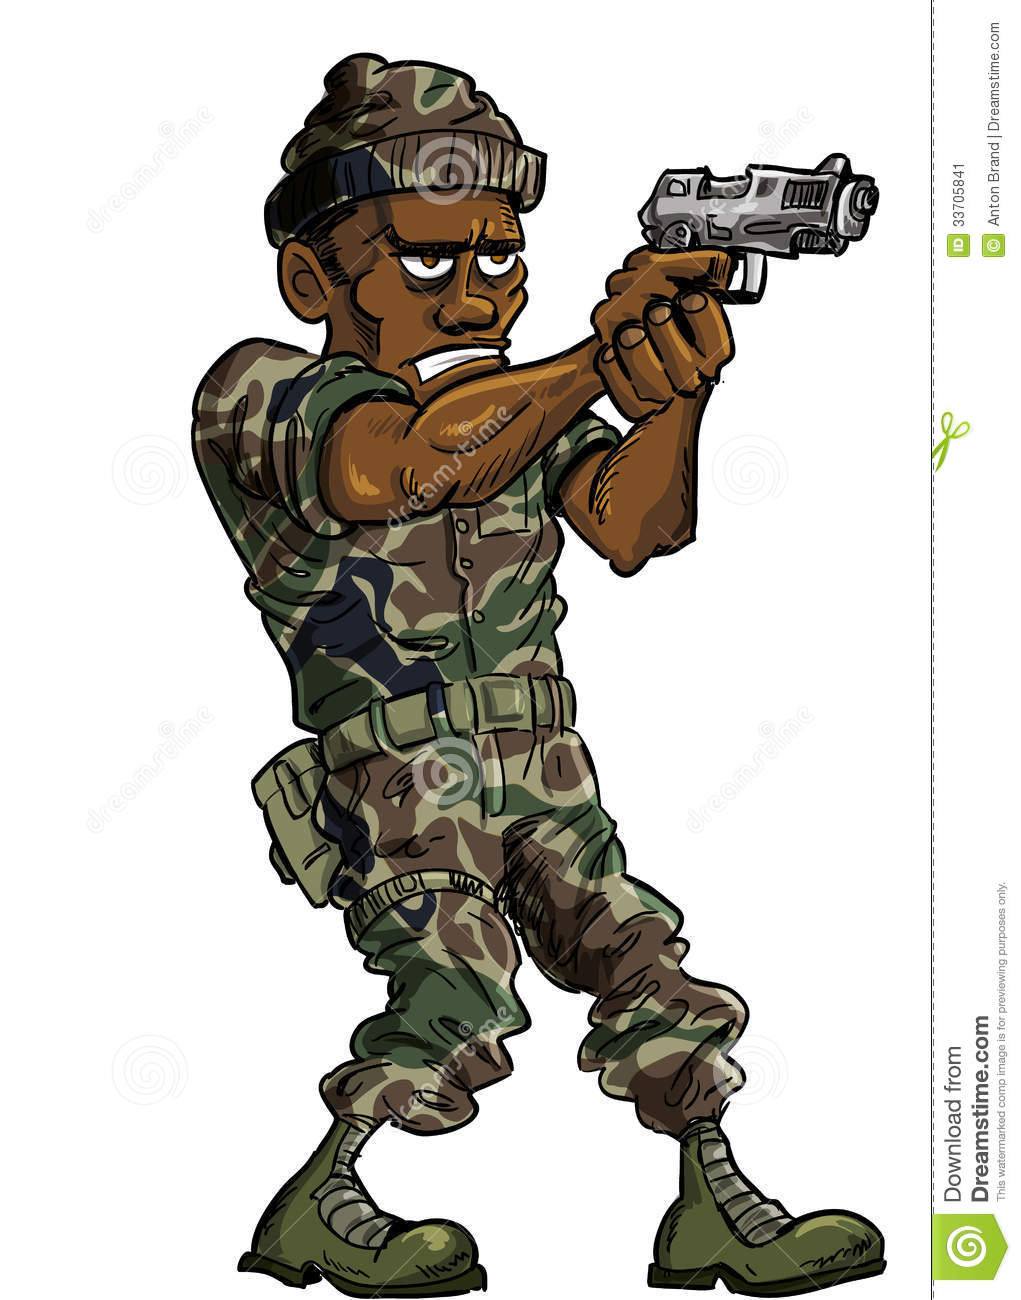 Cartoon Soldier With A Hand Gun Stock Image - Image: 33705841 Soldier With Gun Cartoon